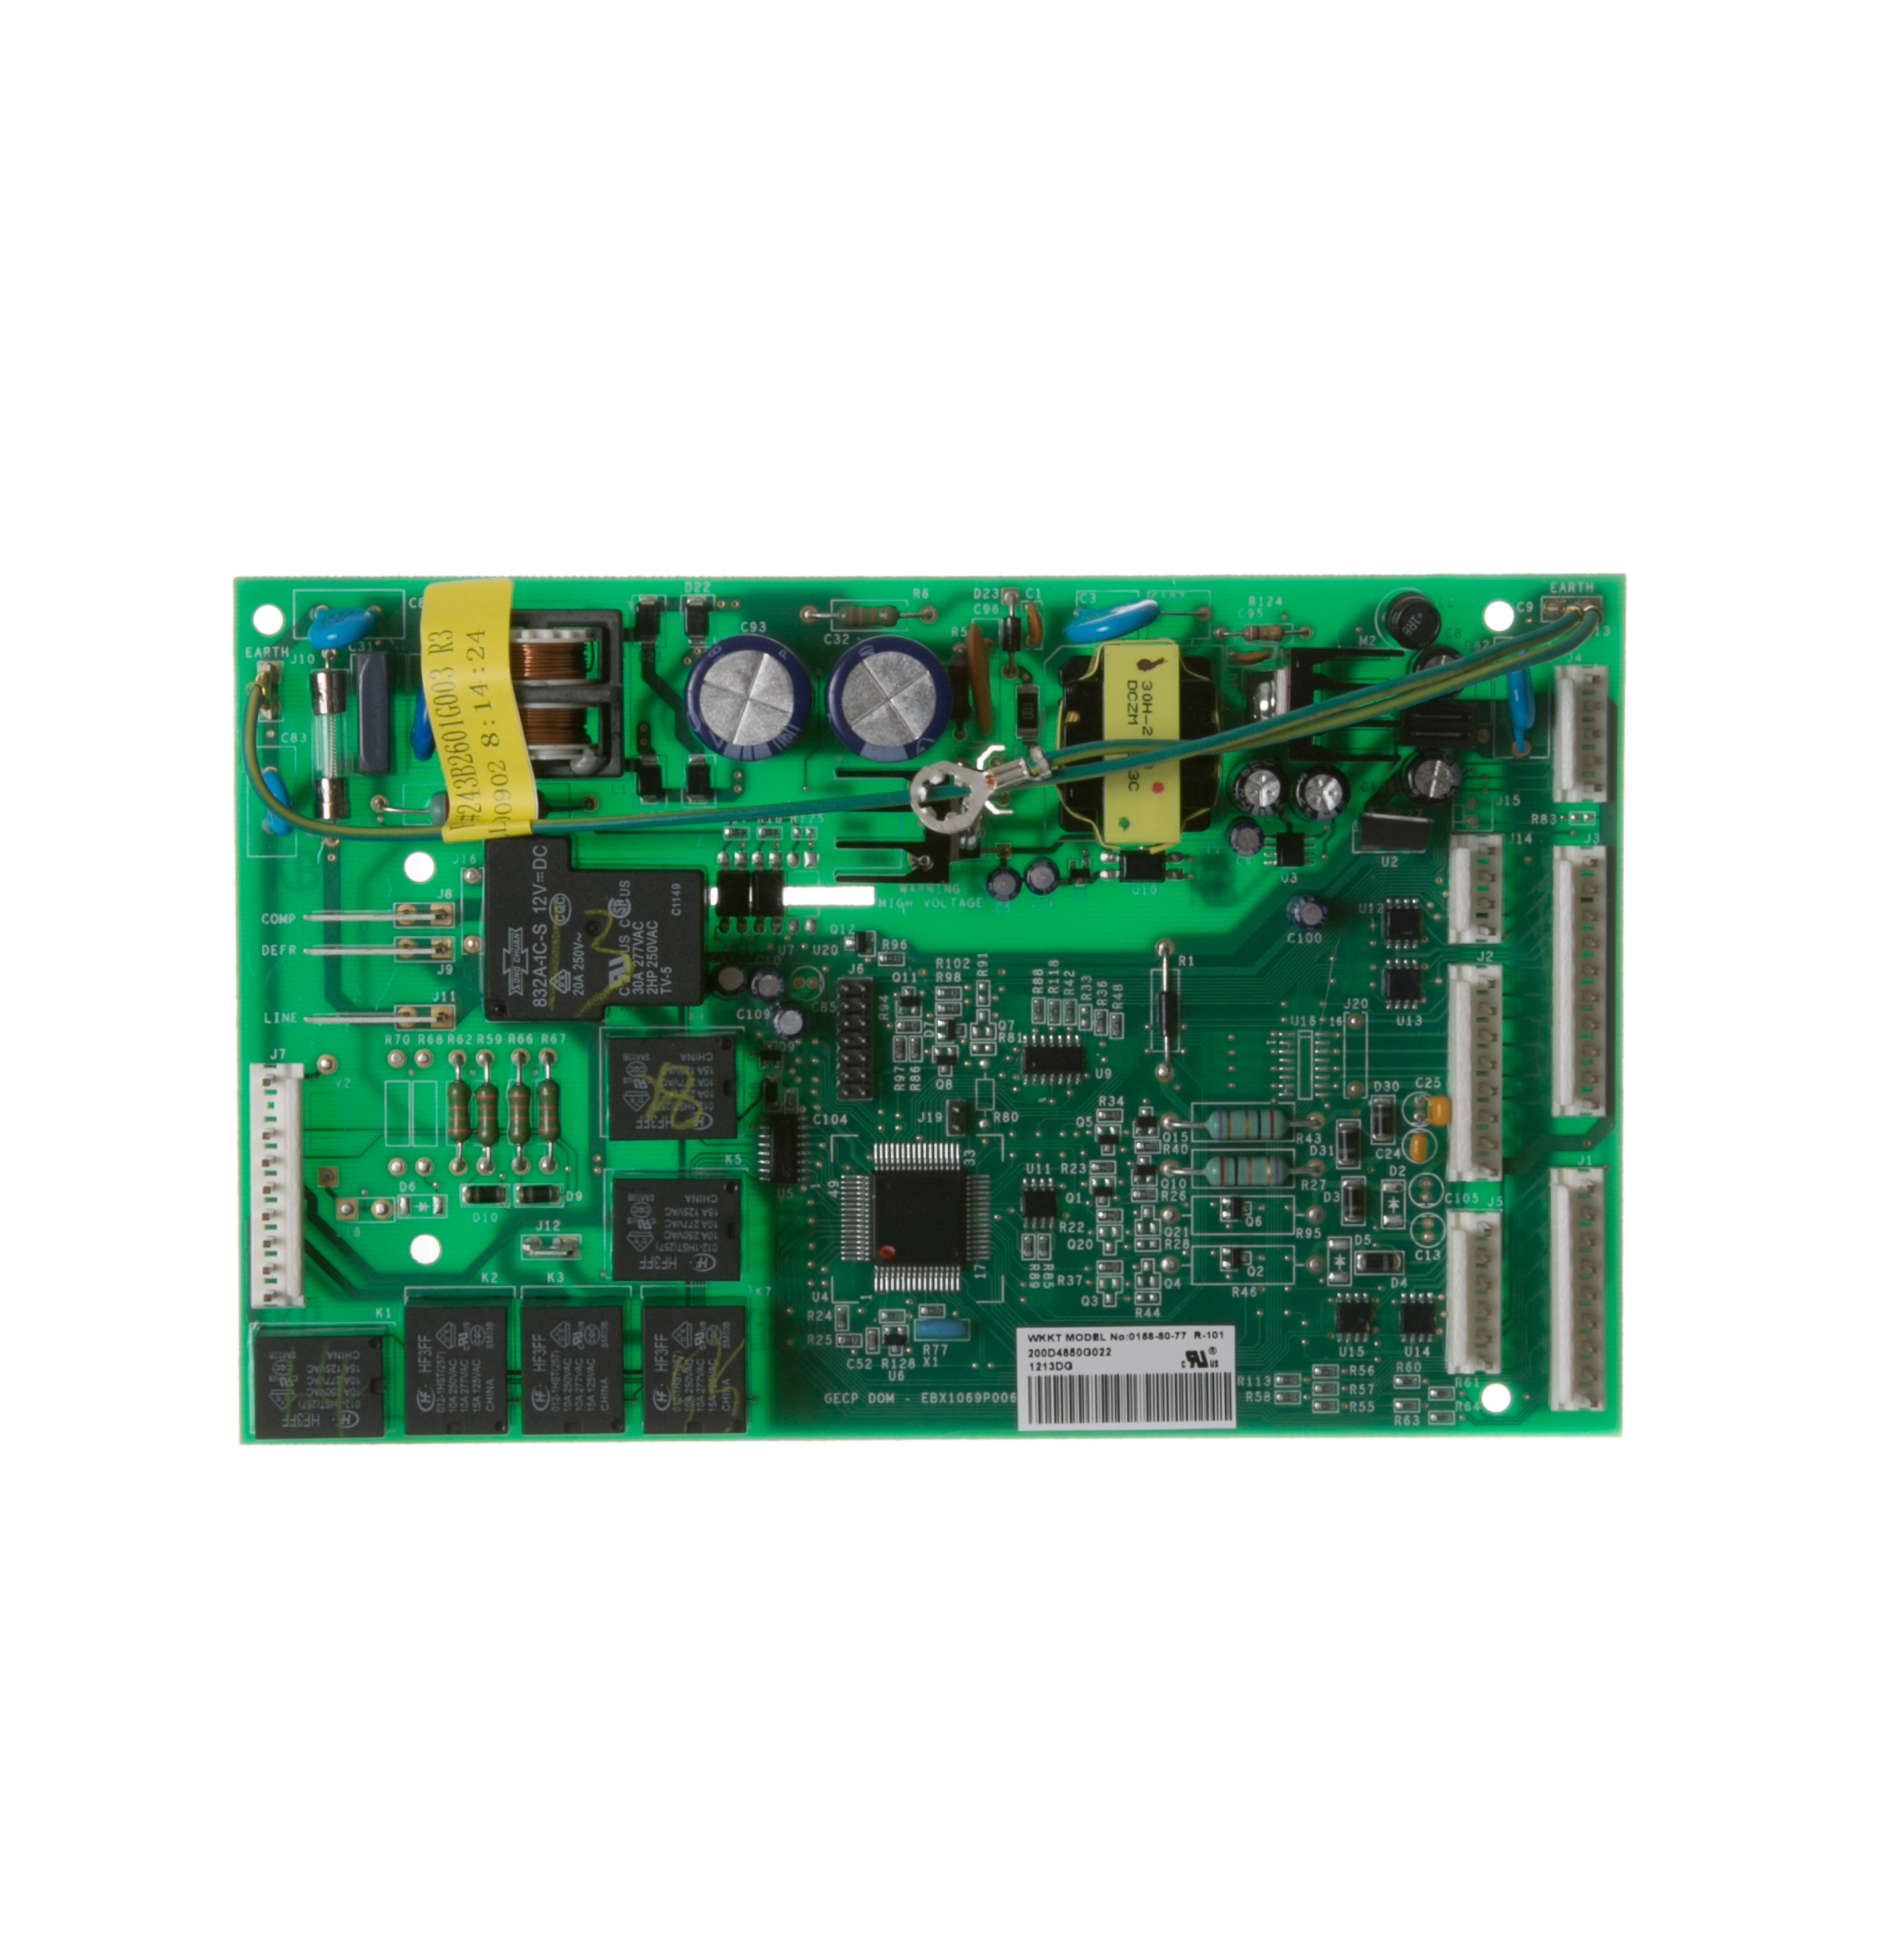 ge refrigerator control board wiring diagram wr55x10942 refrigerator main control board assembly ge  main control board assembly